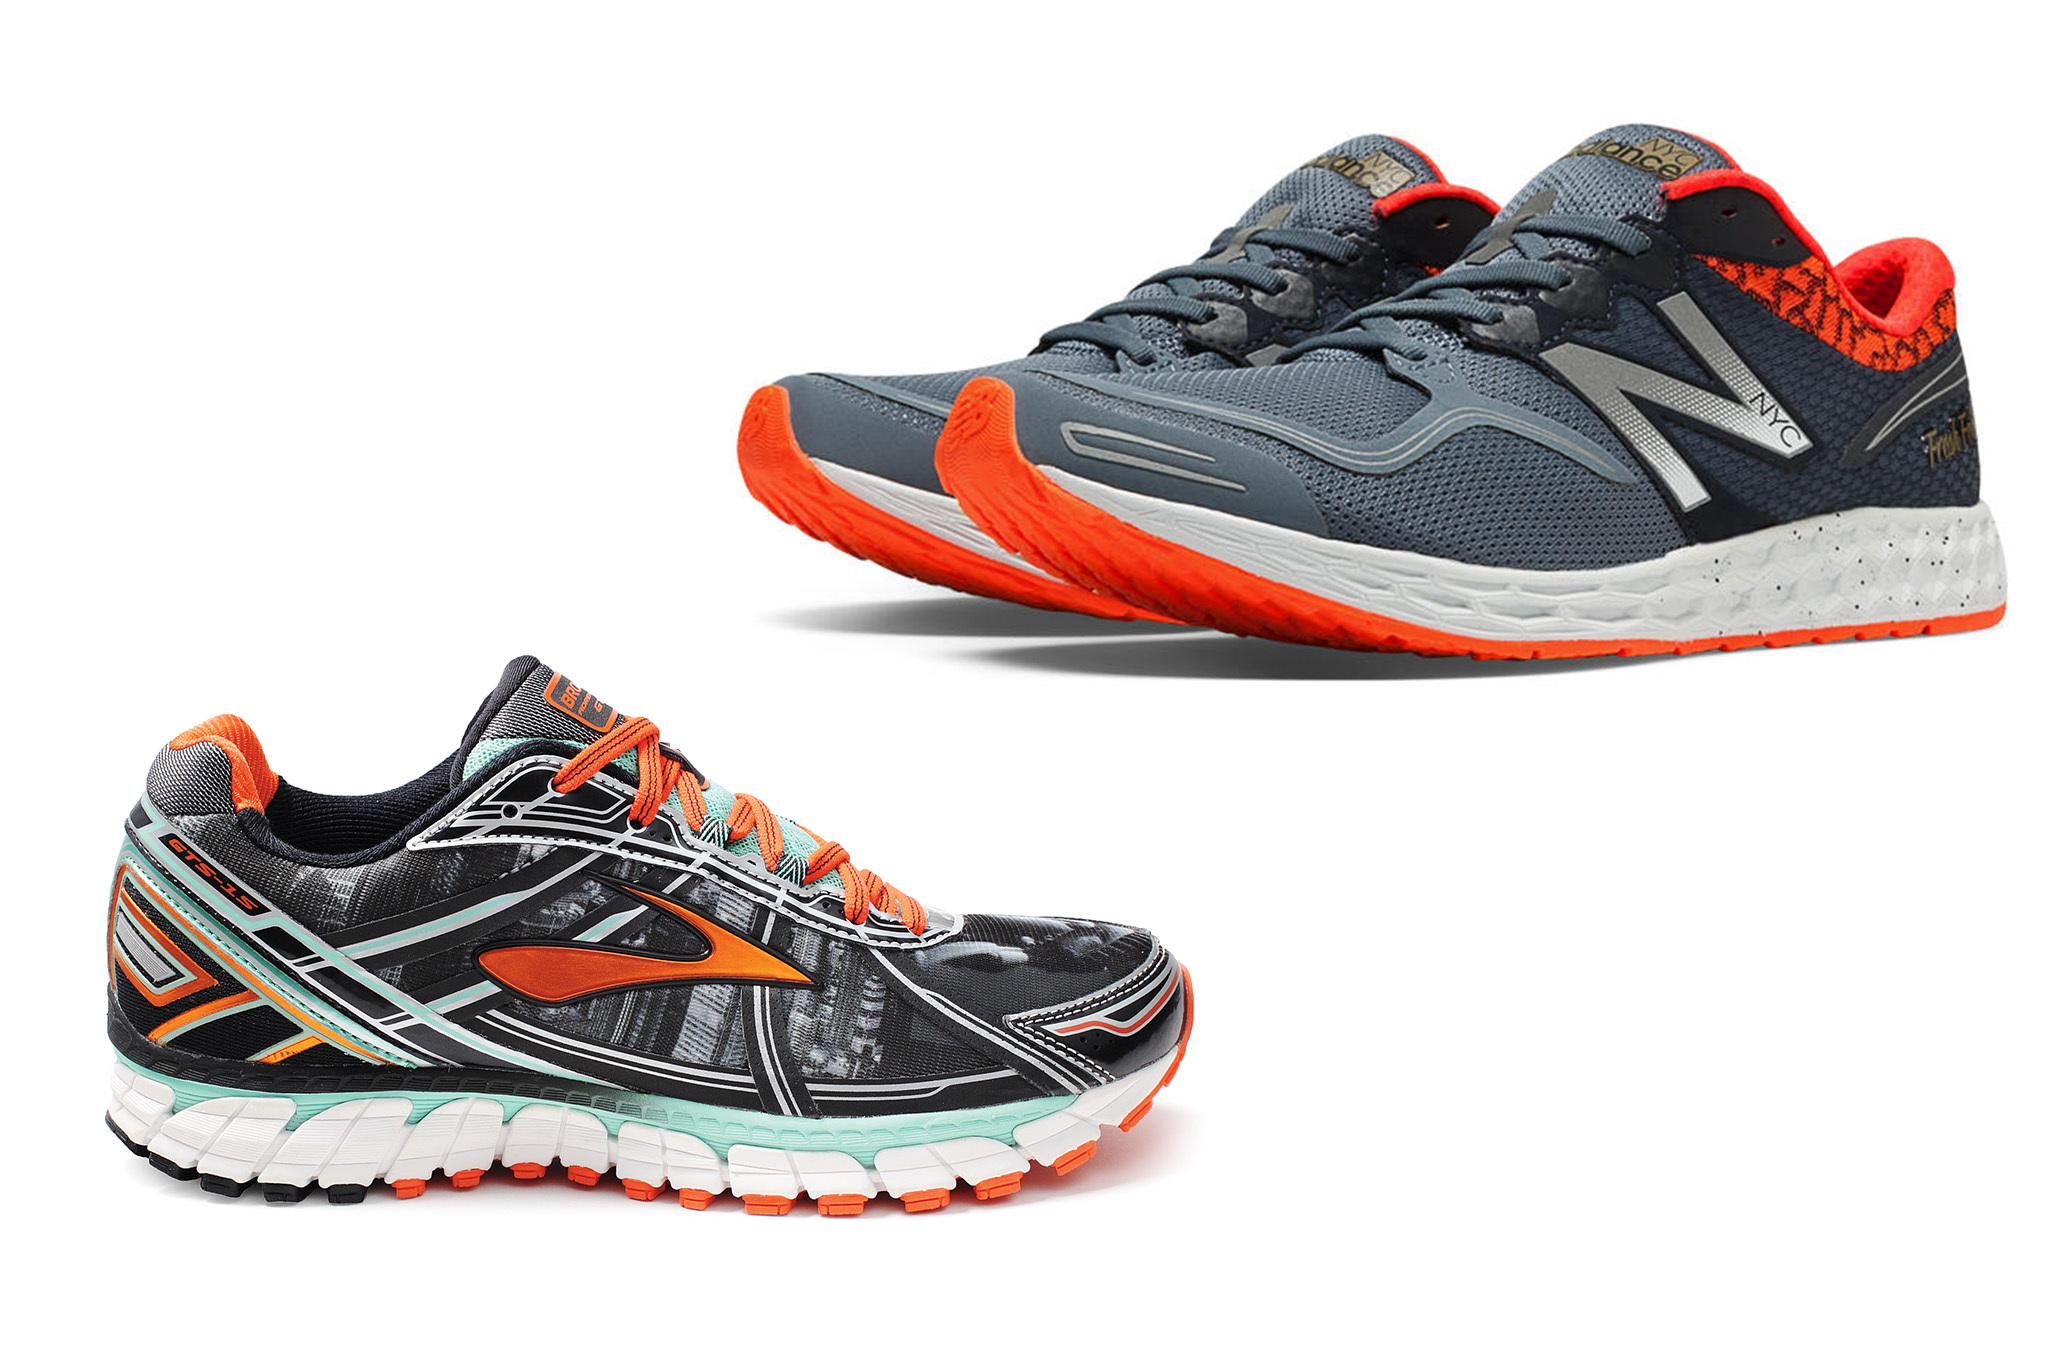 Check out these new running shoes inspired by the NYC Marathon